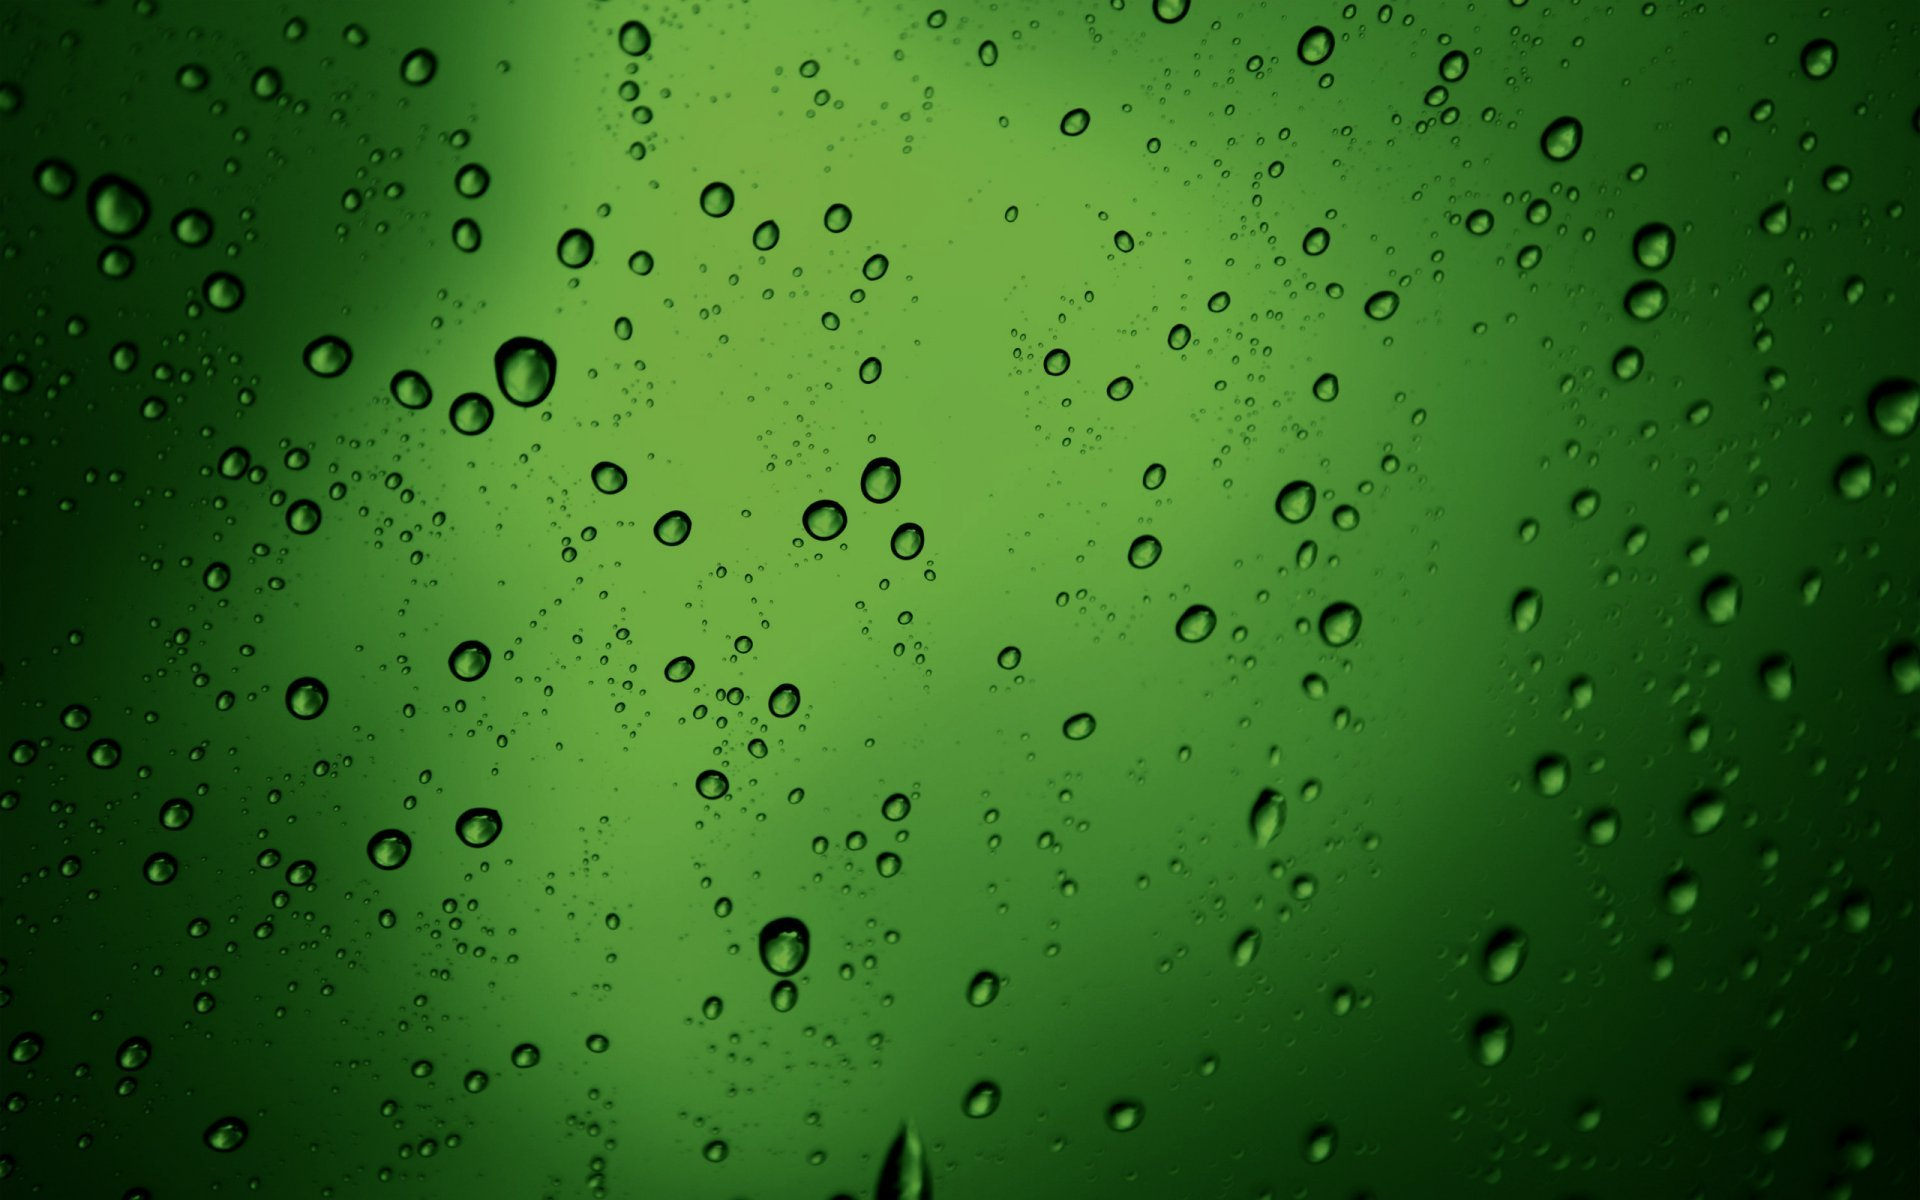 Green beer bubbles photo